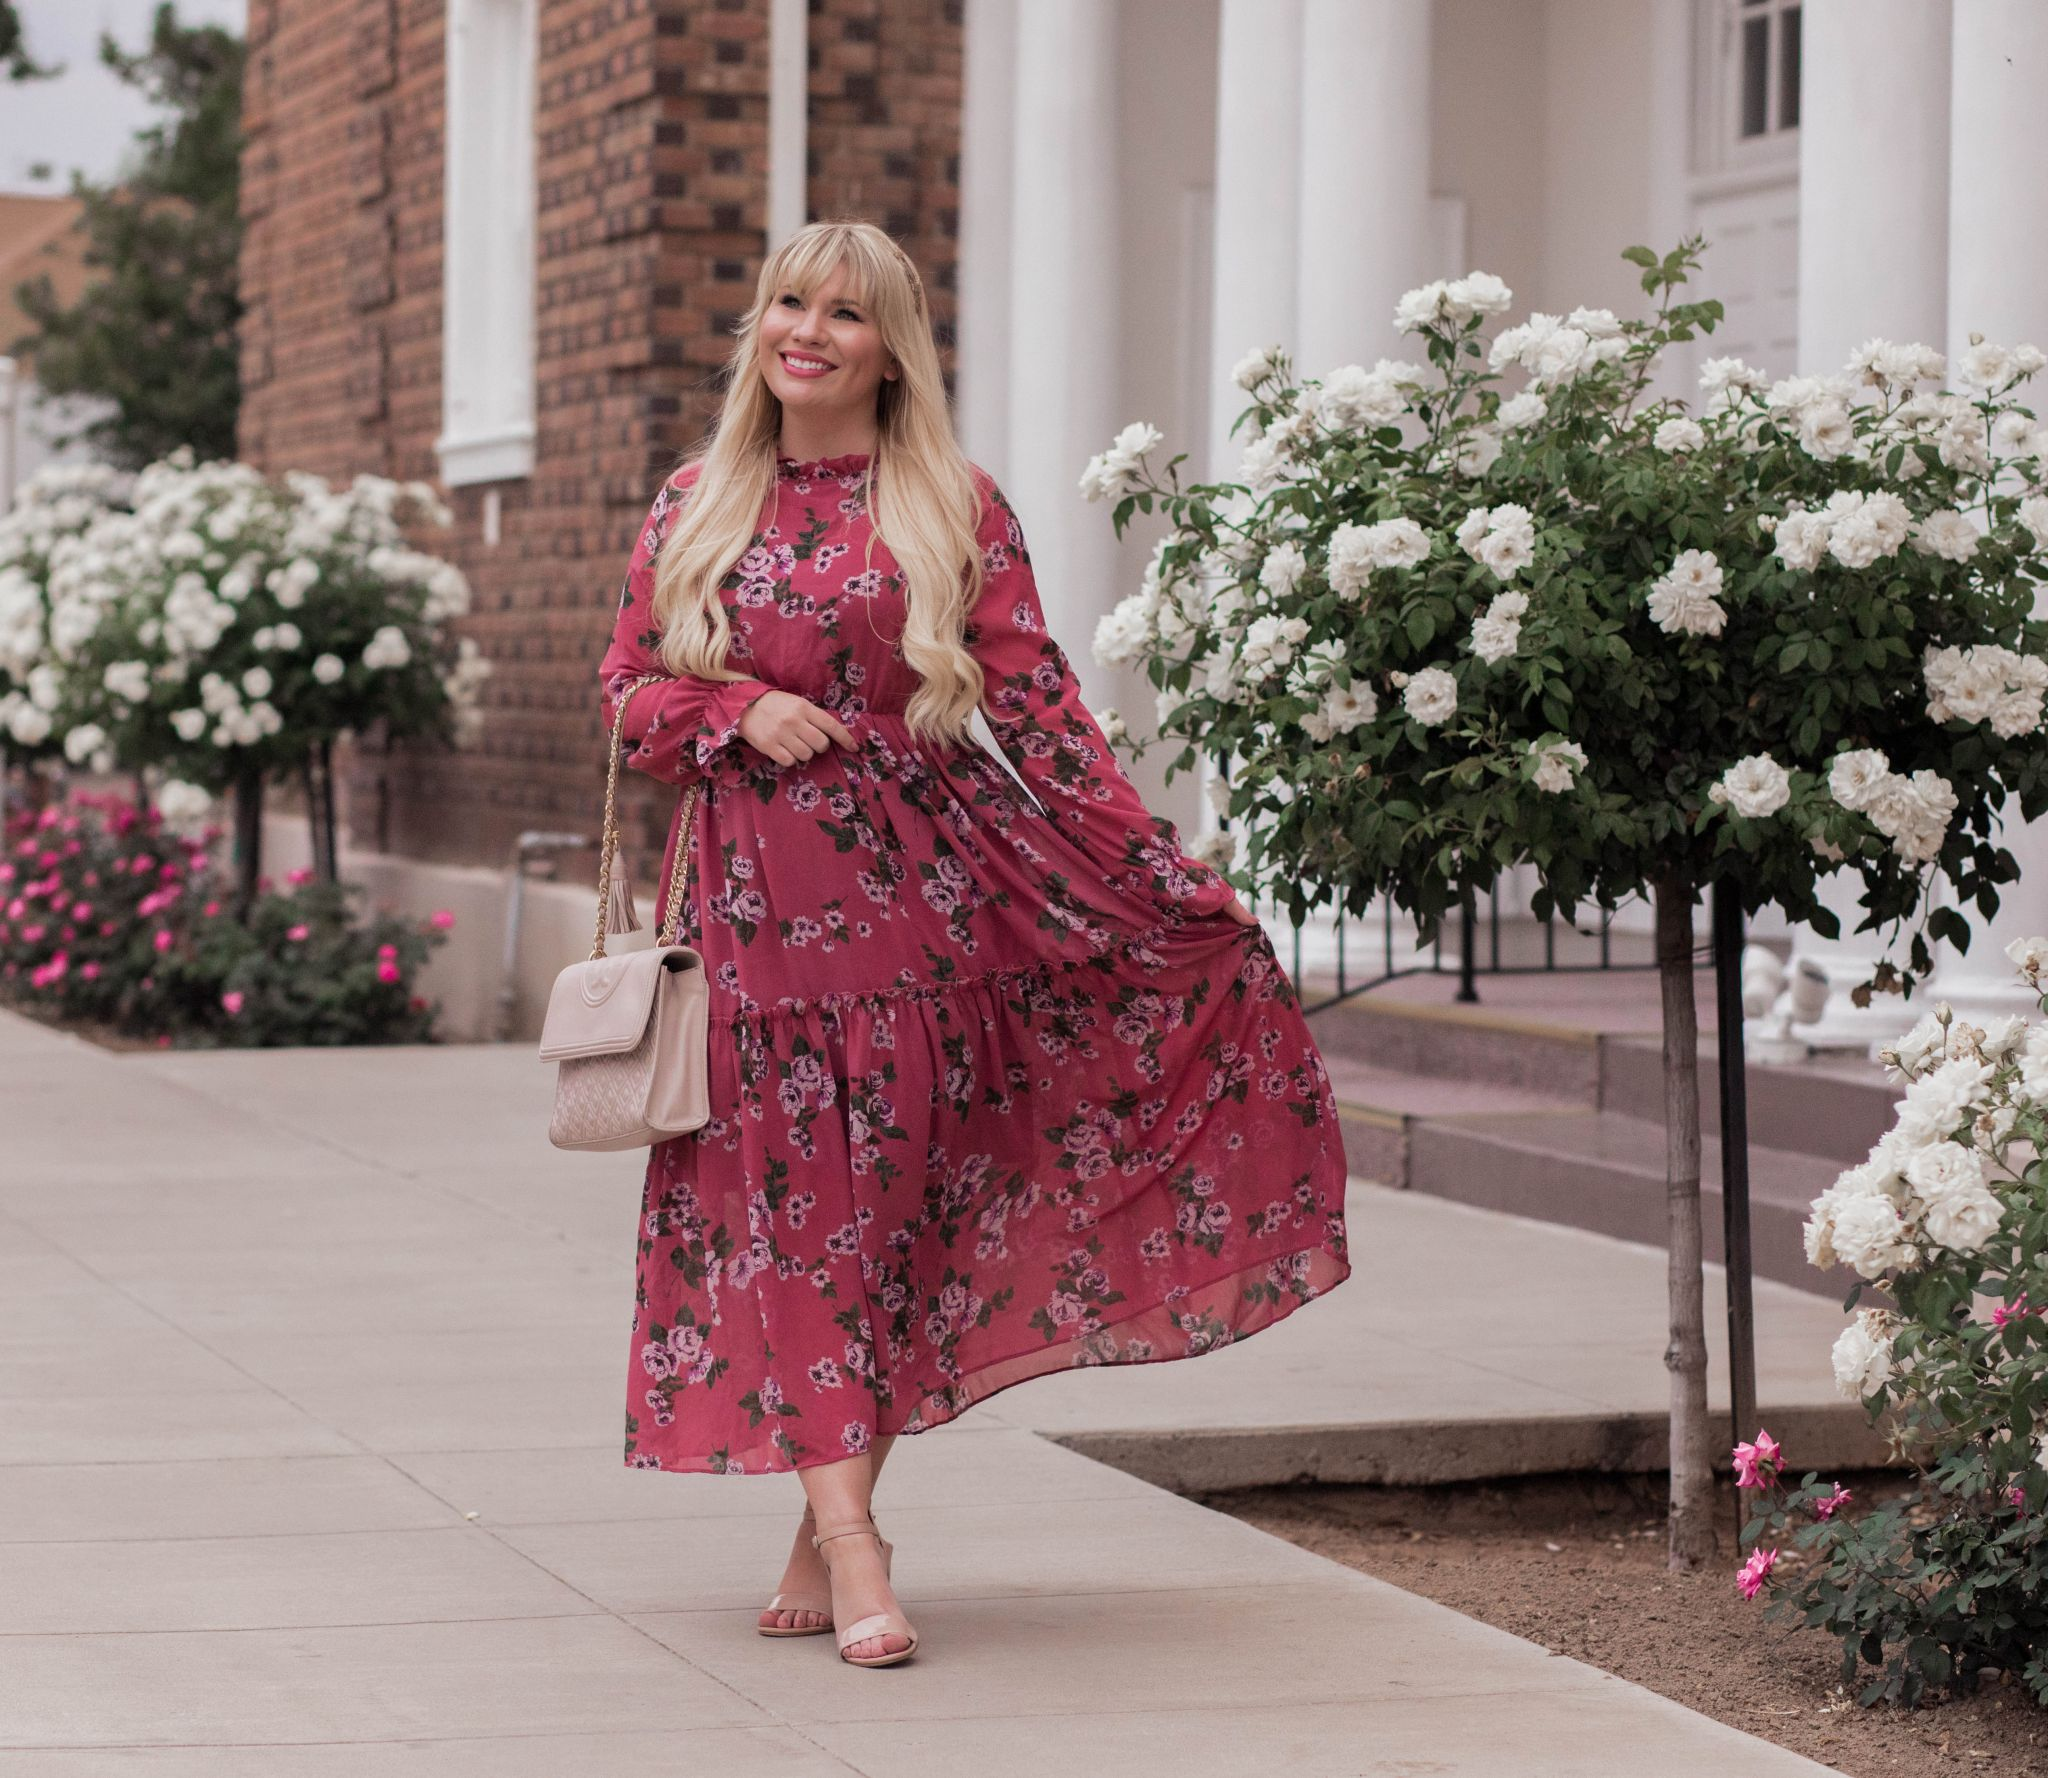 Transitioning to Summer with Flowy Floral Dresses